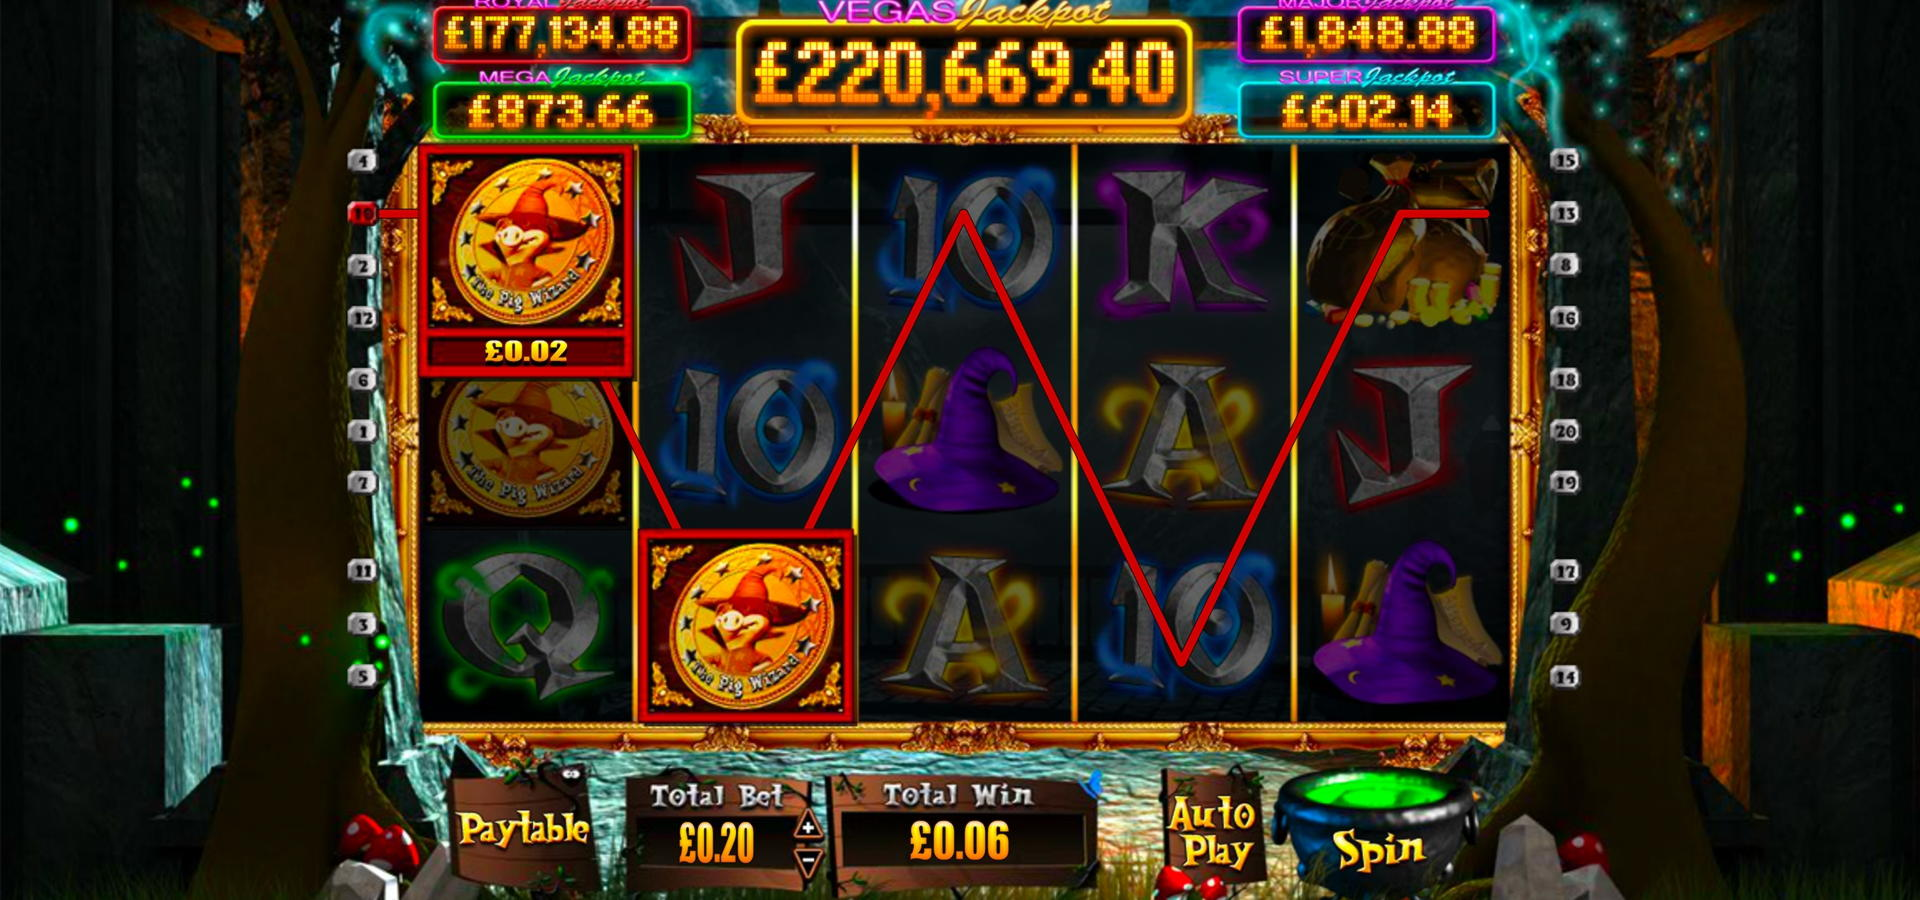 80 Free spins no deposit at BranGo Casino